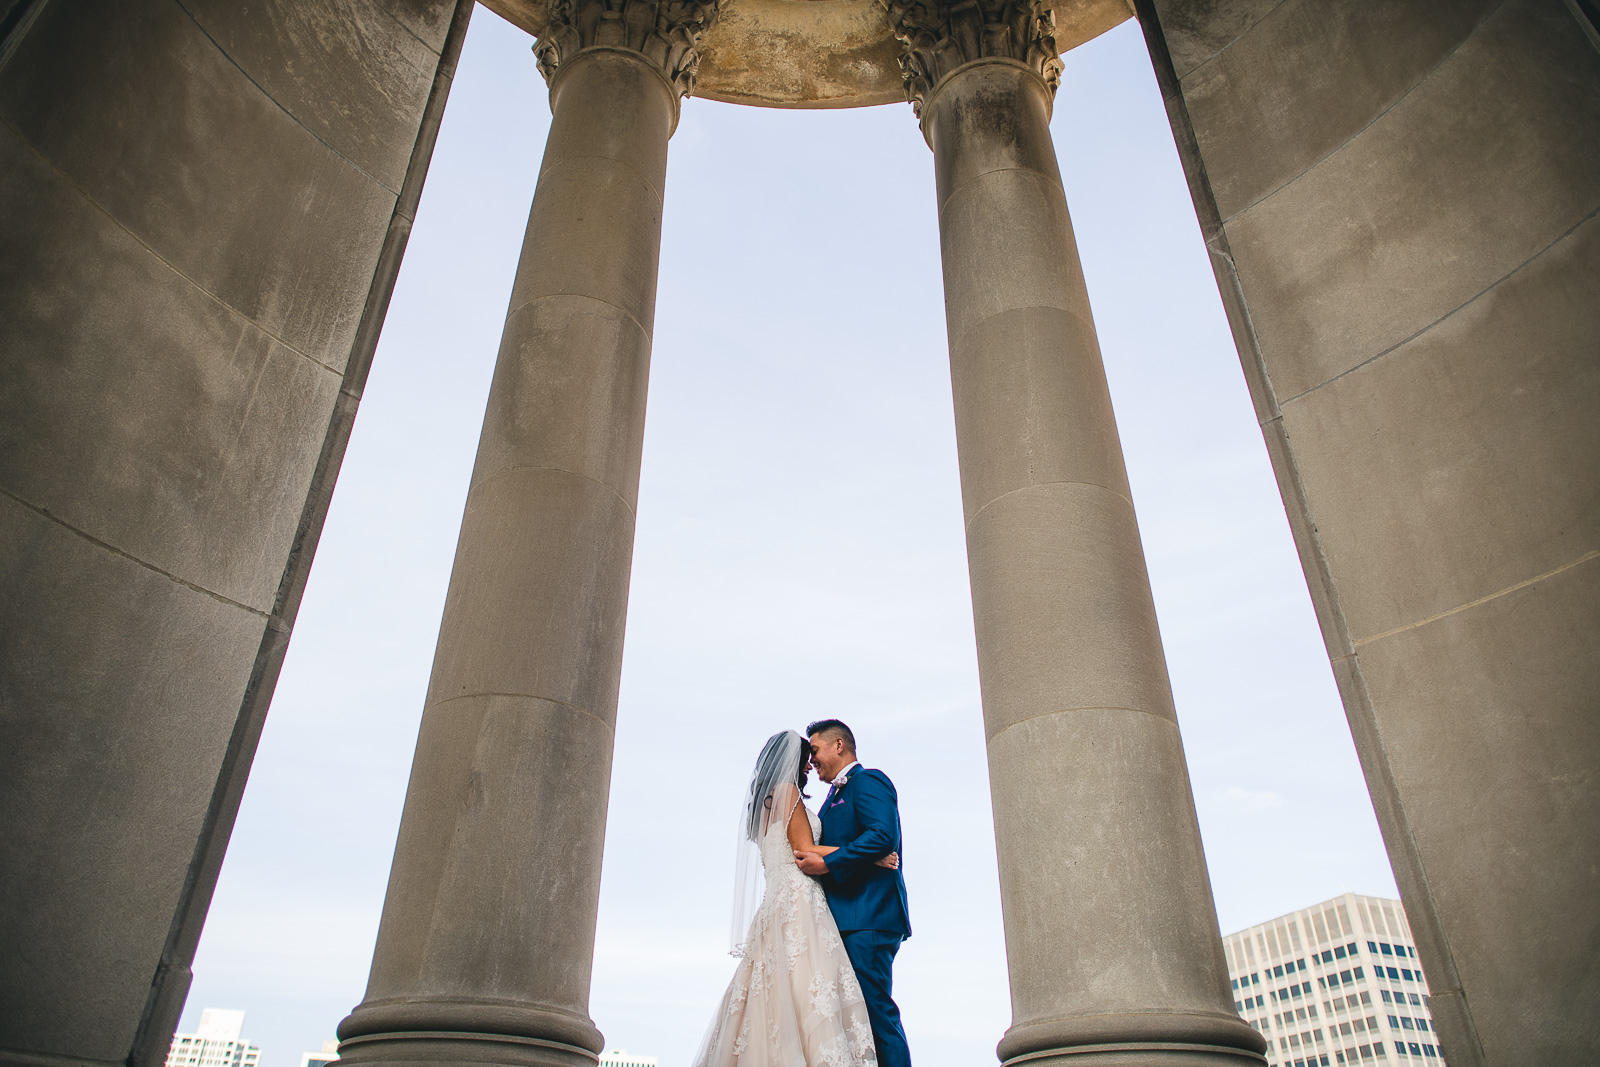 115 chicago wedding photographer best portraits during weddings review - 2018 in Review // My Favorite Chicago Wedding Photography Portraits